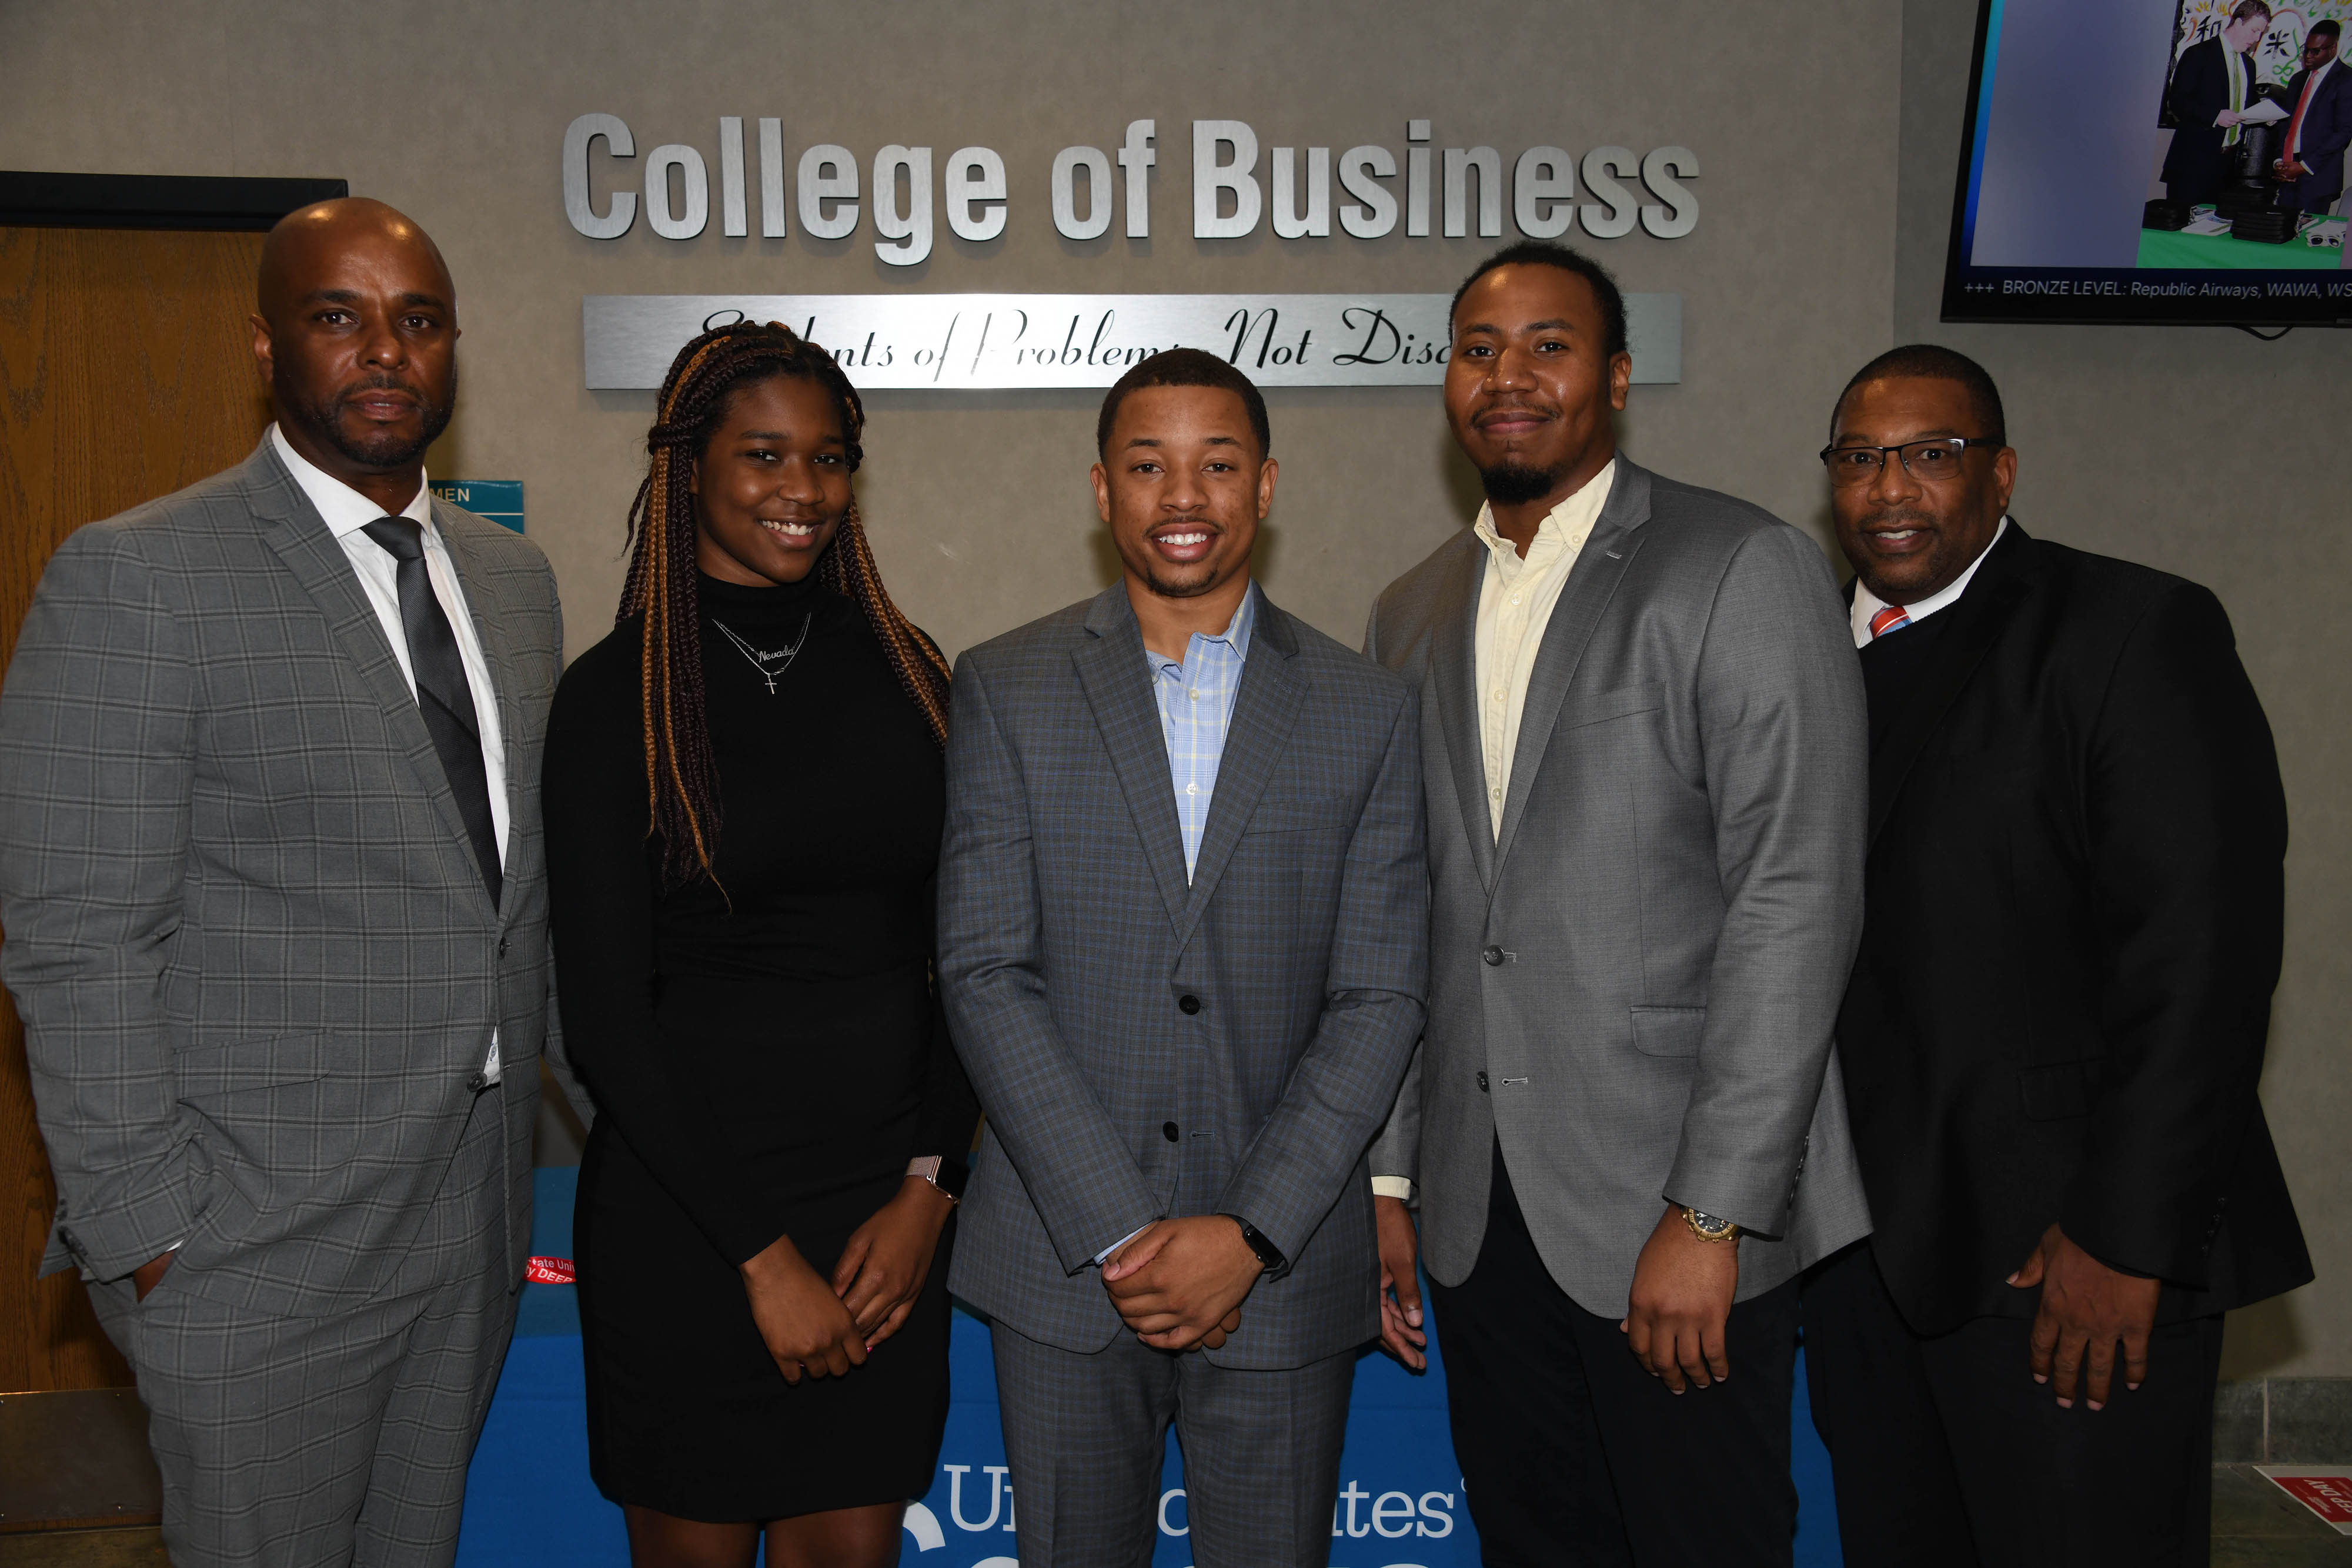 Dr. Michael Casson Jr., dean of the College of Business, stands with students Yazmin Harris, Jason Nunley, and Michael Ford and Associate Professor Wade Robinson, who all attended the recent International Economic Development Council Conference in Indianapolis, Ind.